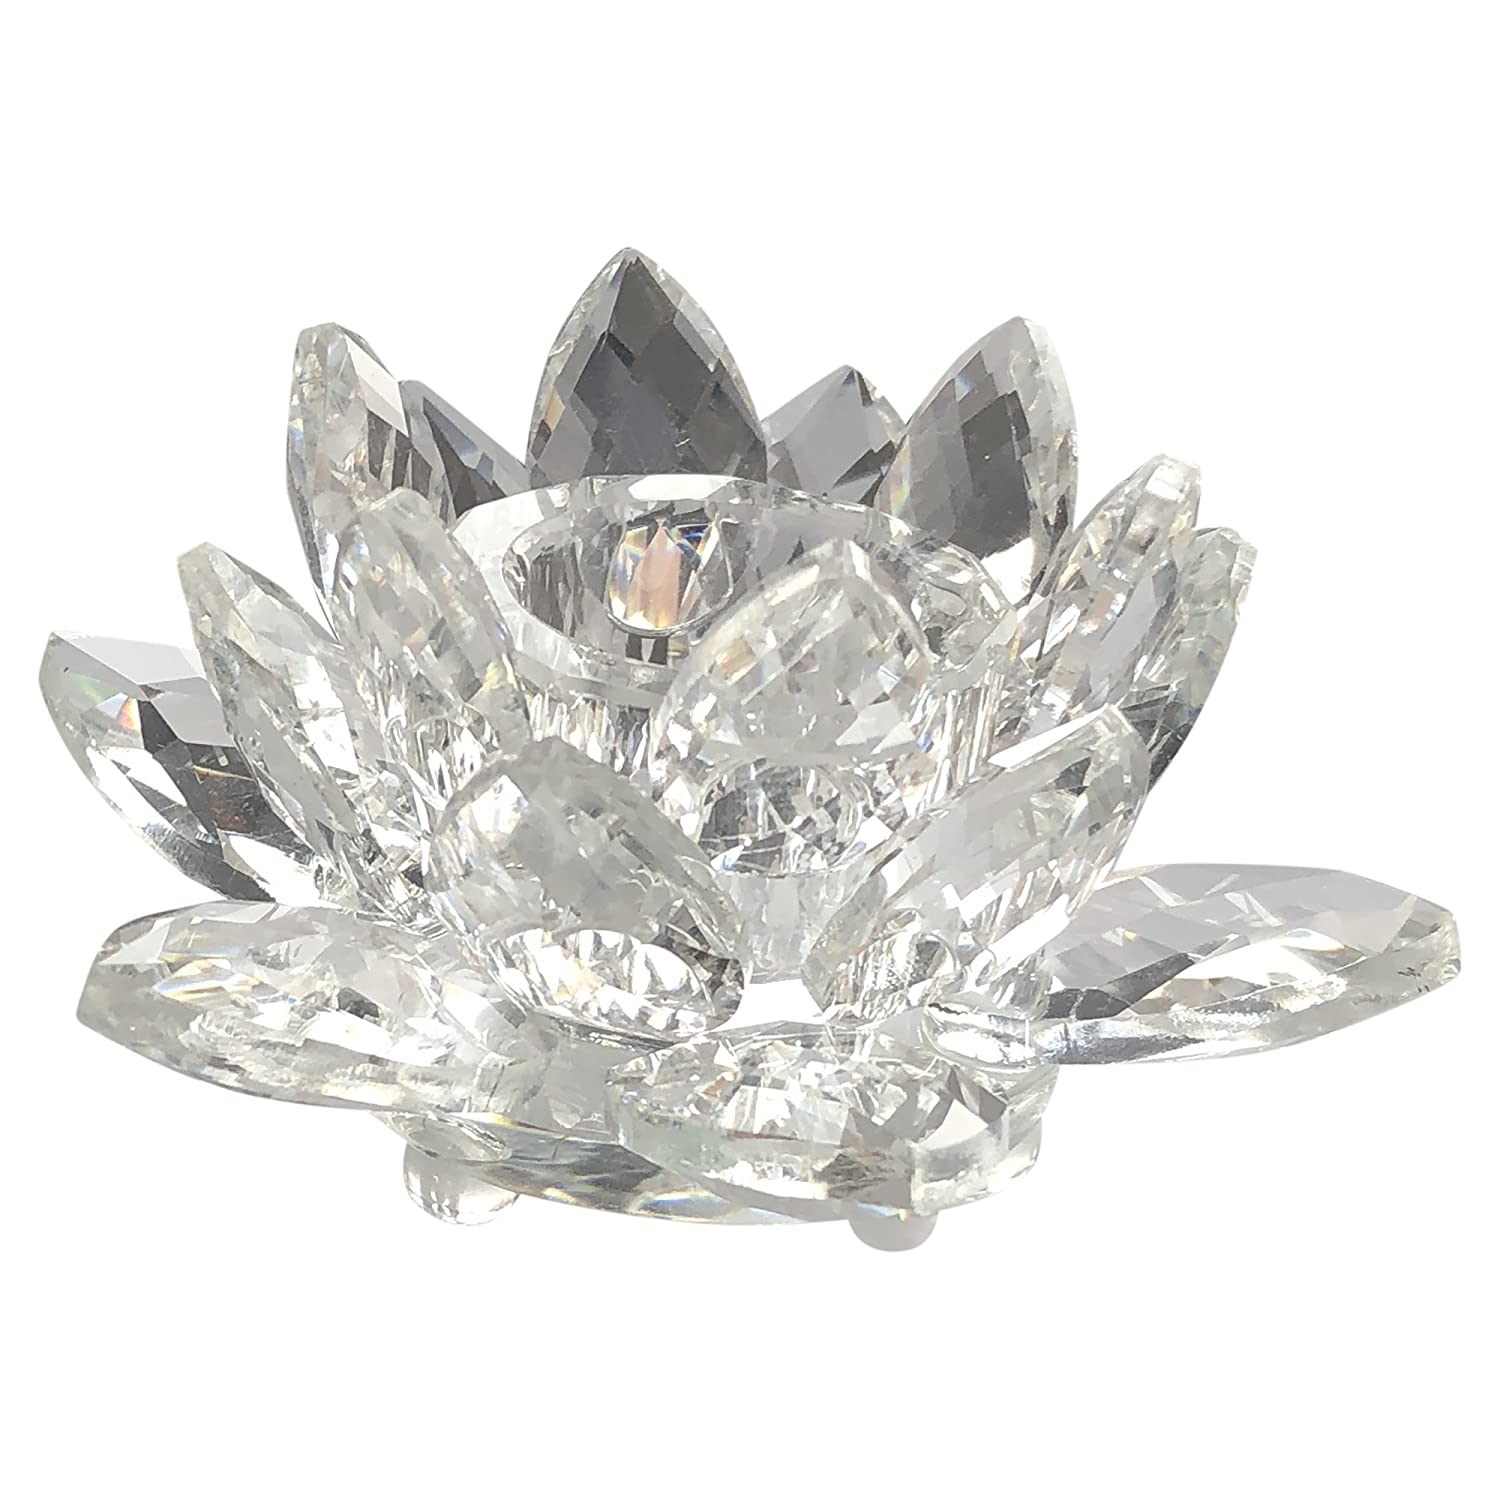 All_In_All Crystal Lotus Flower Candle Holder Crystal Candle Holder With Gift Box Ideal To Use